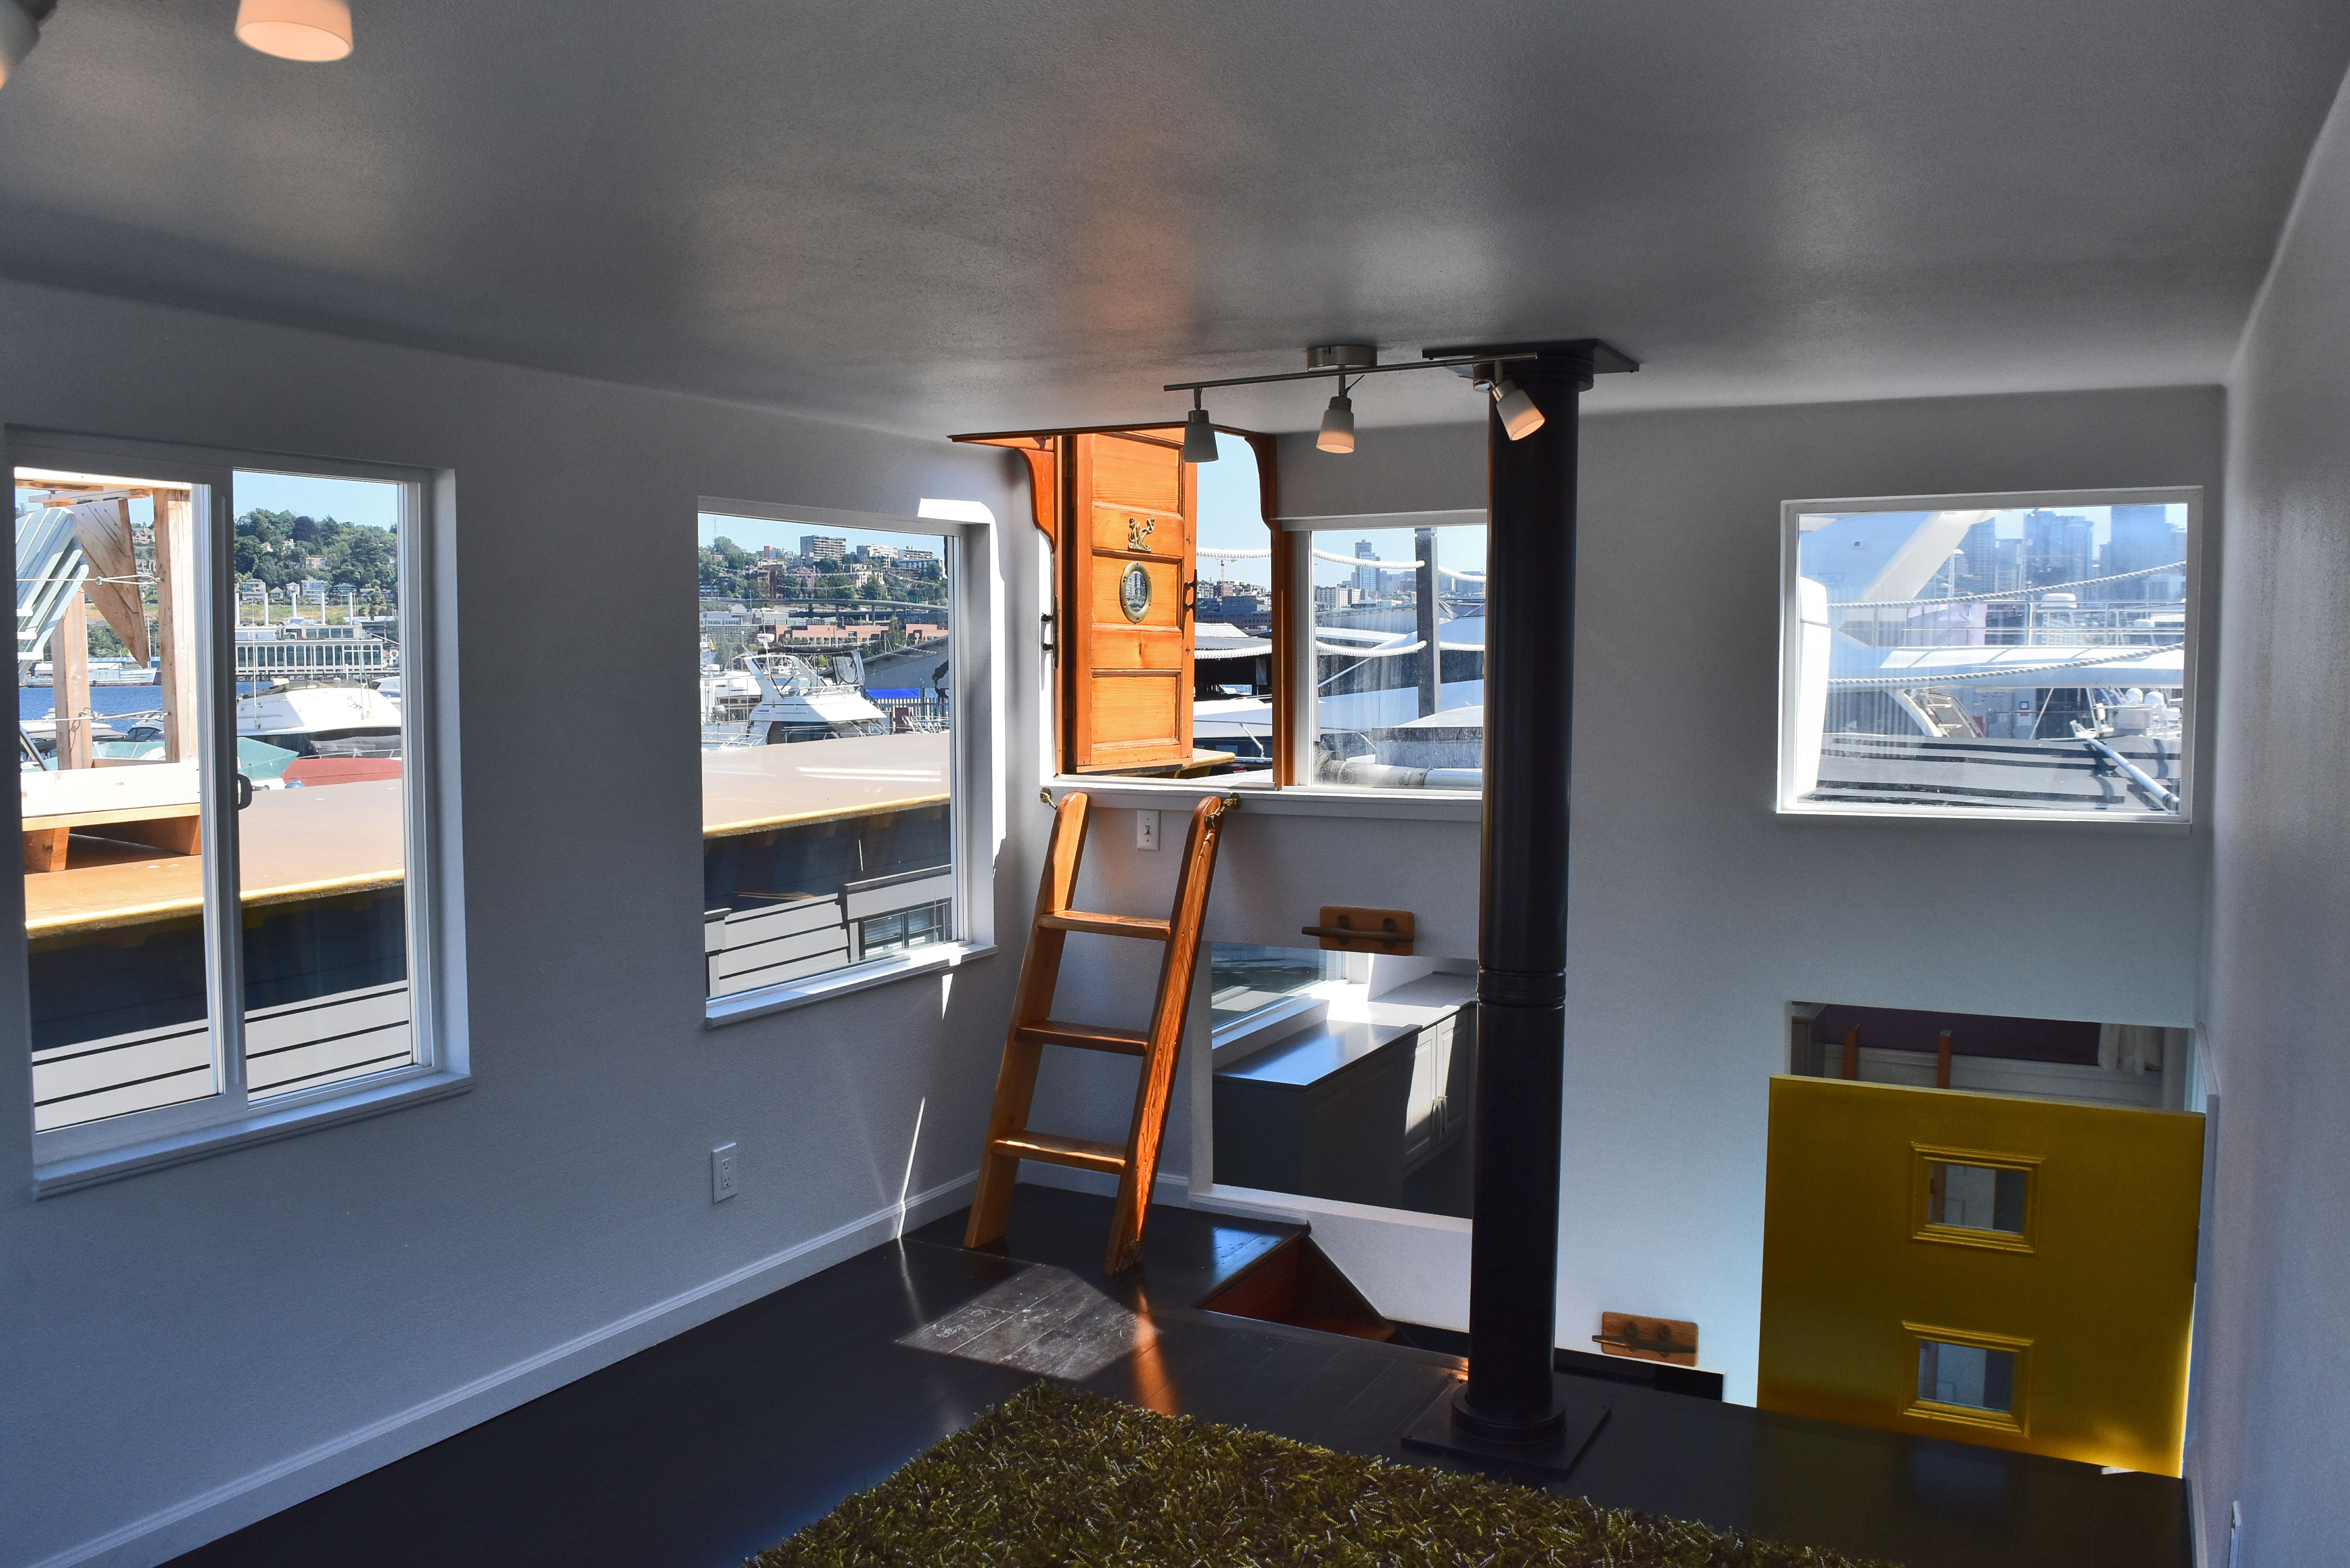 listen to lake union on april s song houseboat curbed seattle climb up another half floor for an even better view from the 16 by 11 square foot rooftop deck trimmed with rope for a nautical touch and all ready for